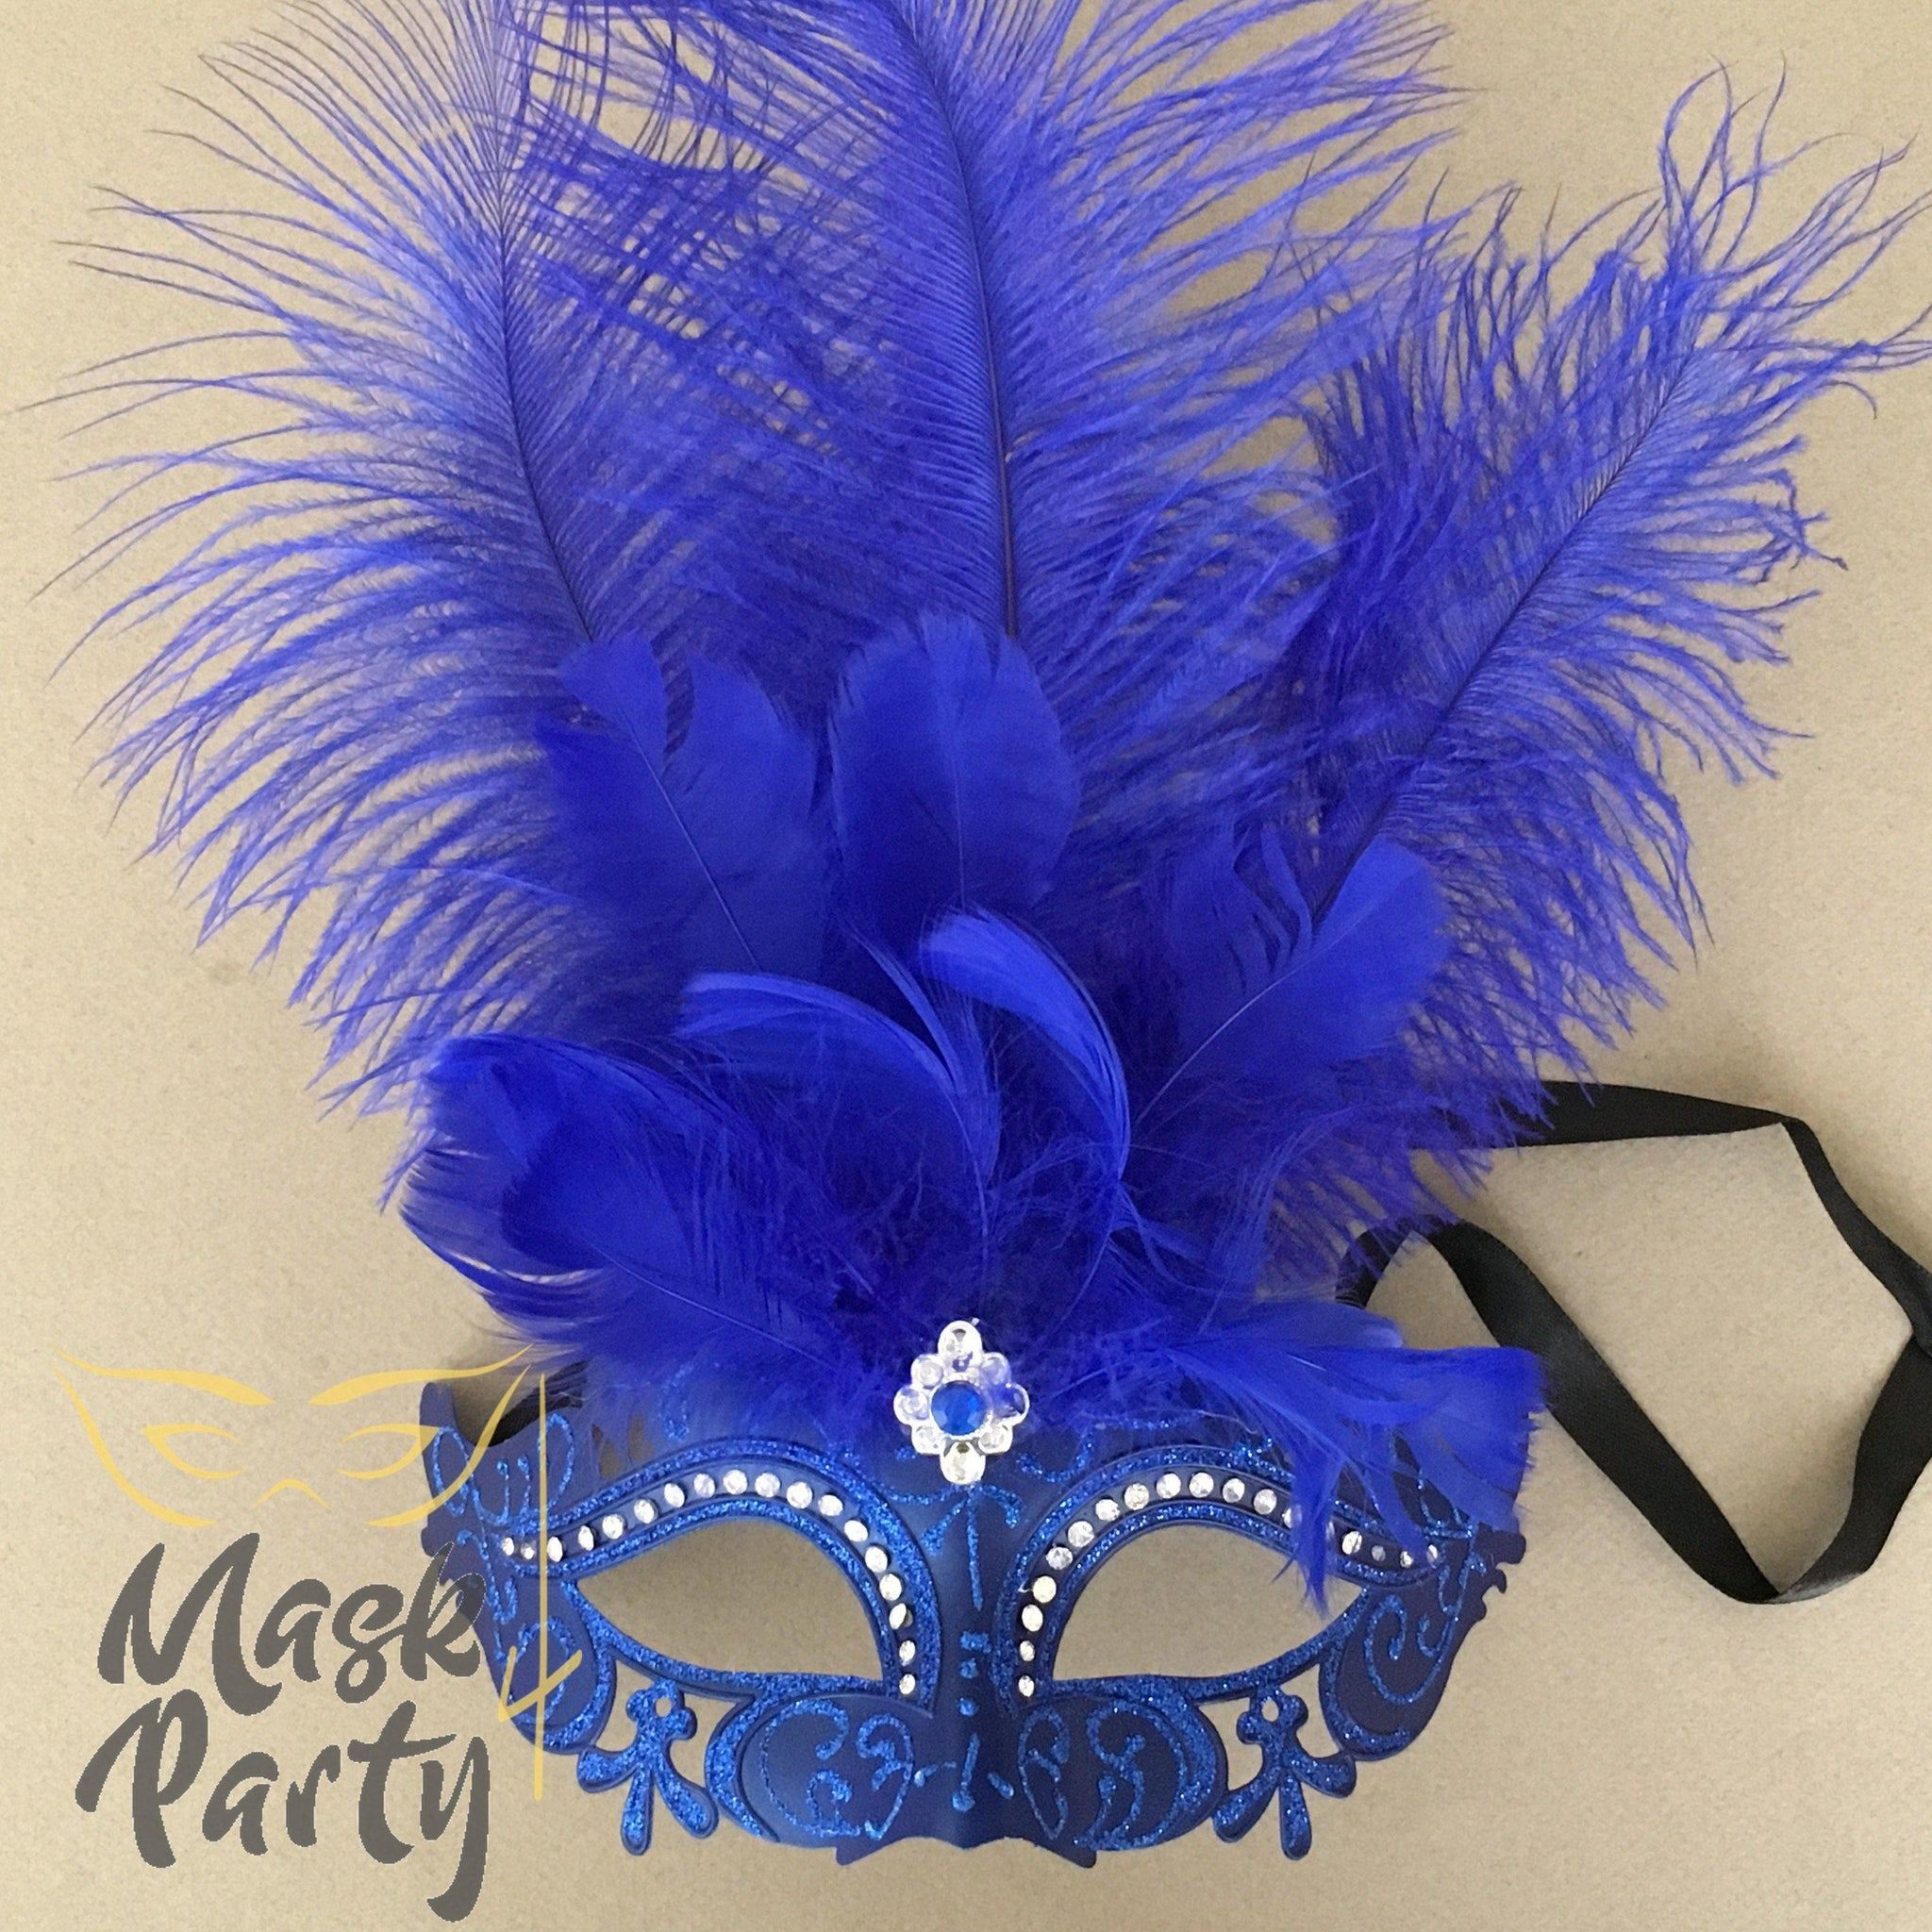 Masquerade Mask - Flapping Feather w/ Crystal - Blue - Mask4Party